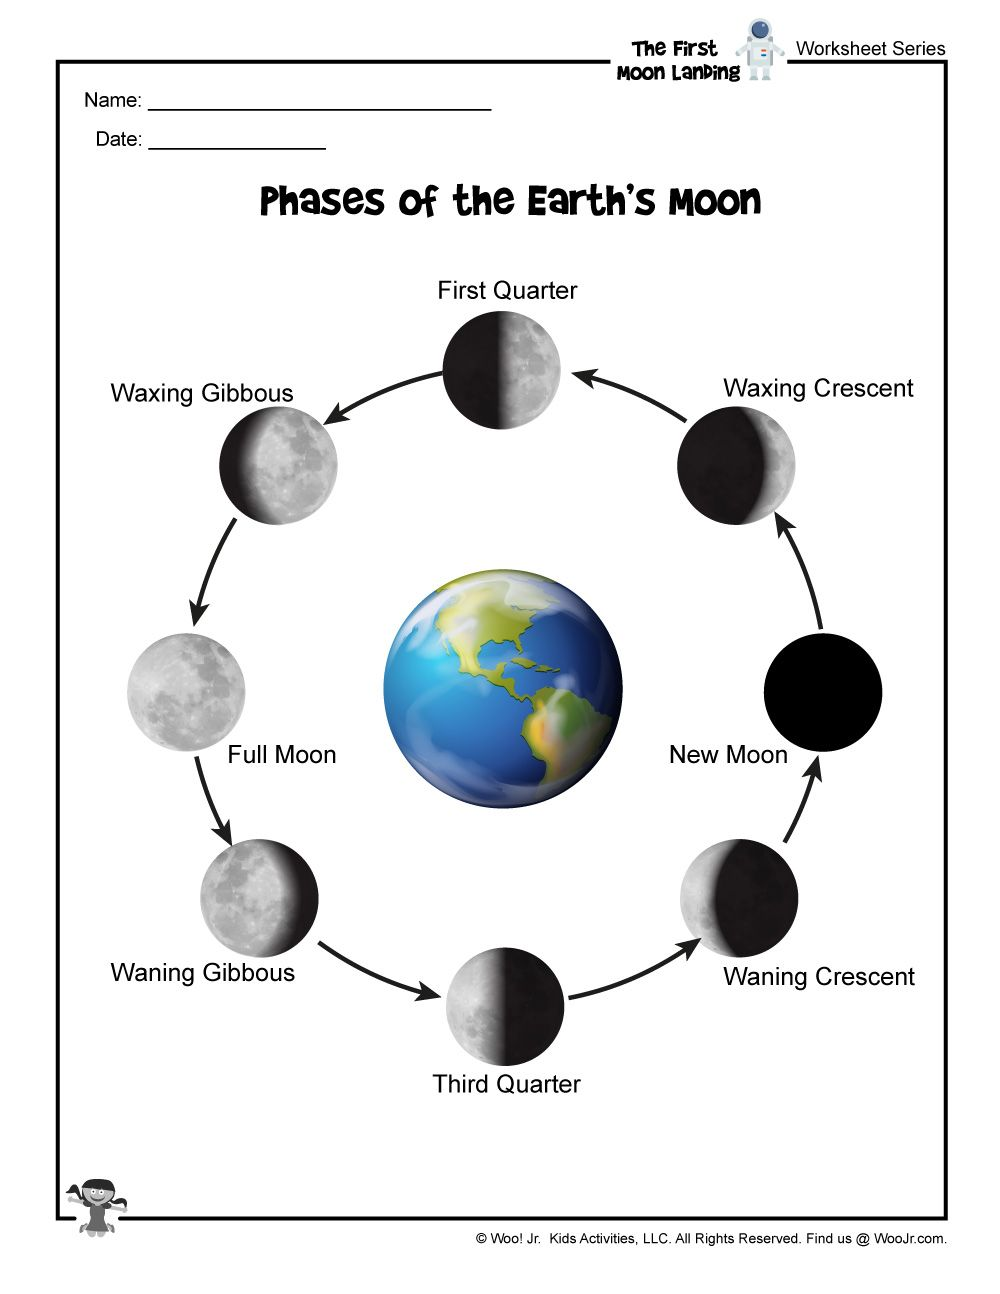 Moon Phases In Order Reference Worksheet Woo Jr Kids Activities Solar System Worksheets Moon Phases Moon For Kids [ 1294 x 1000 Pixel ]